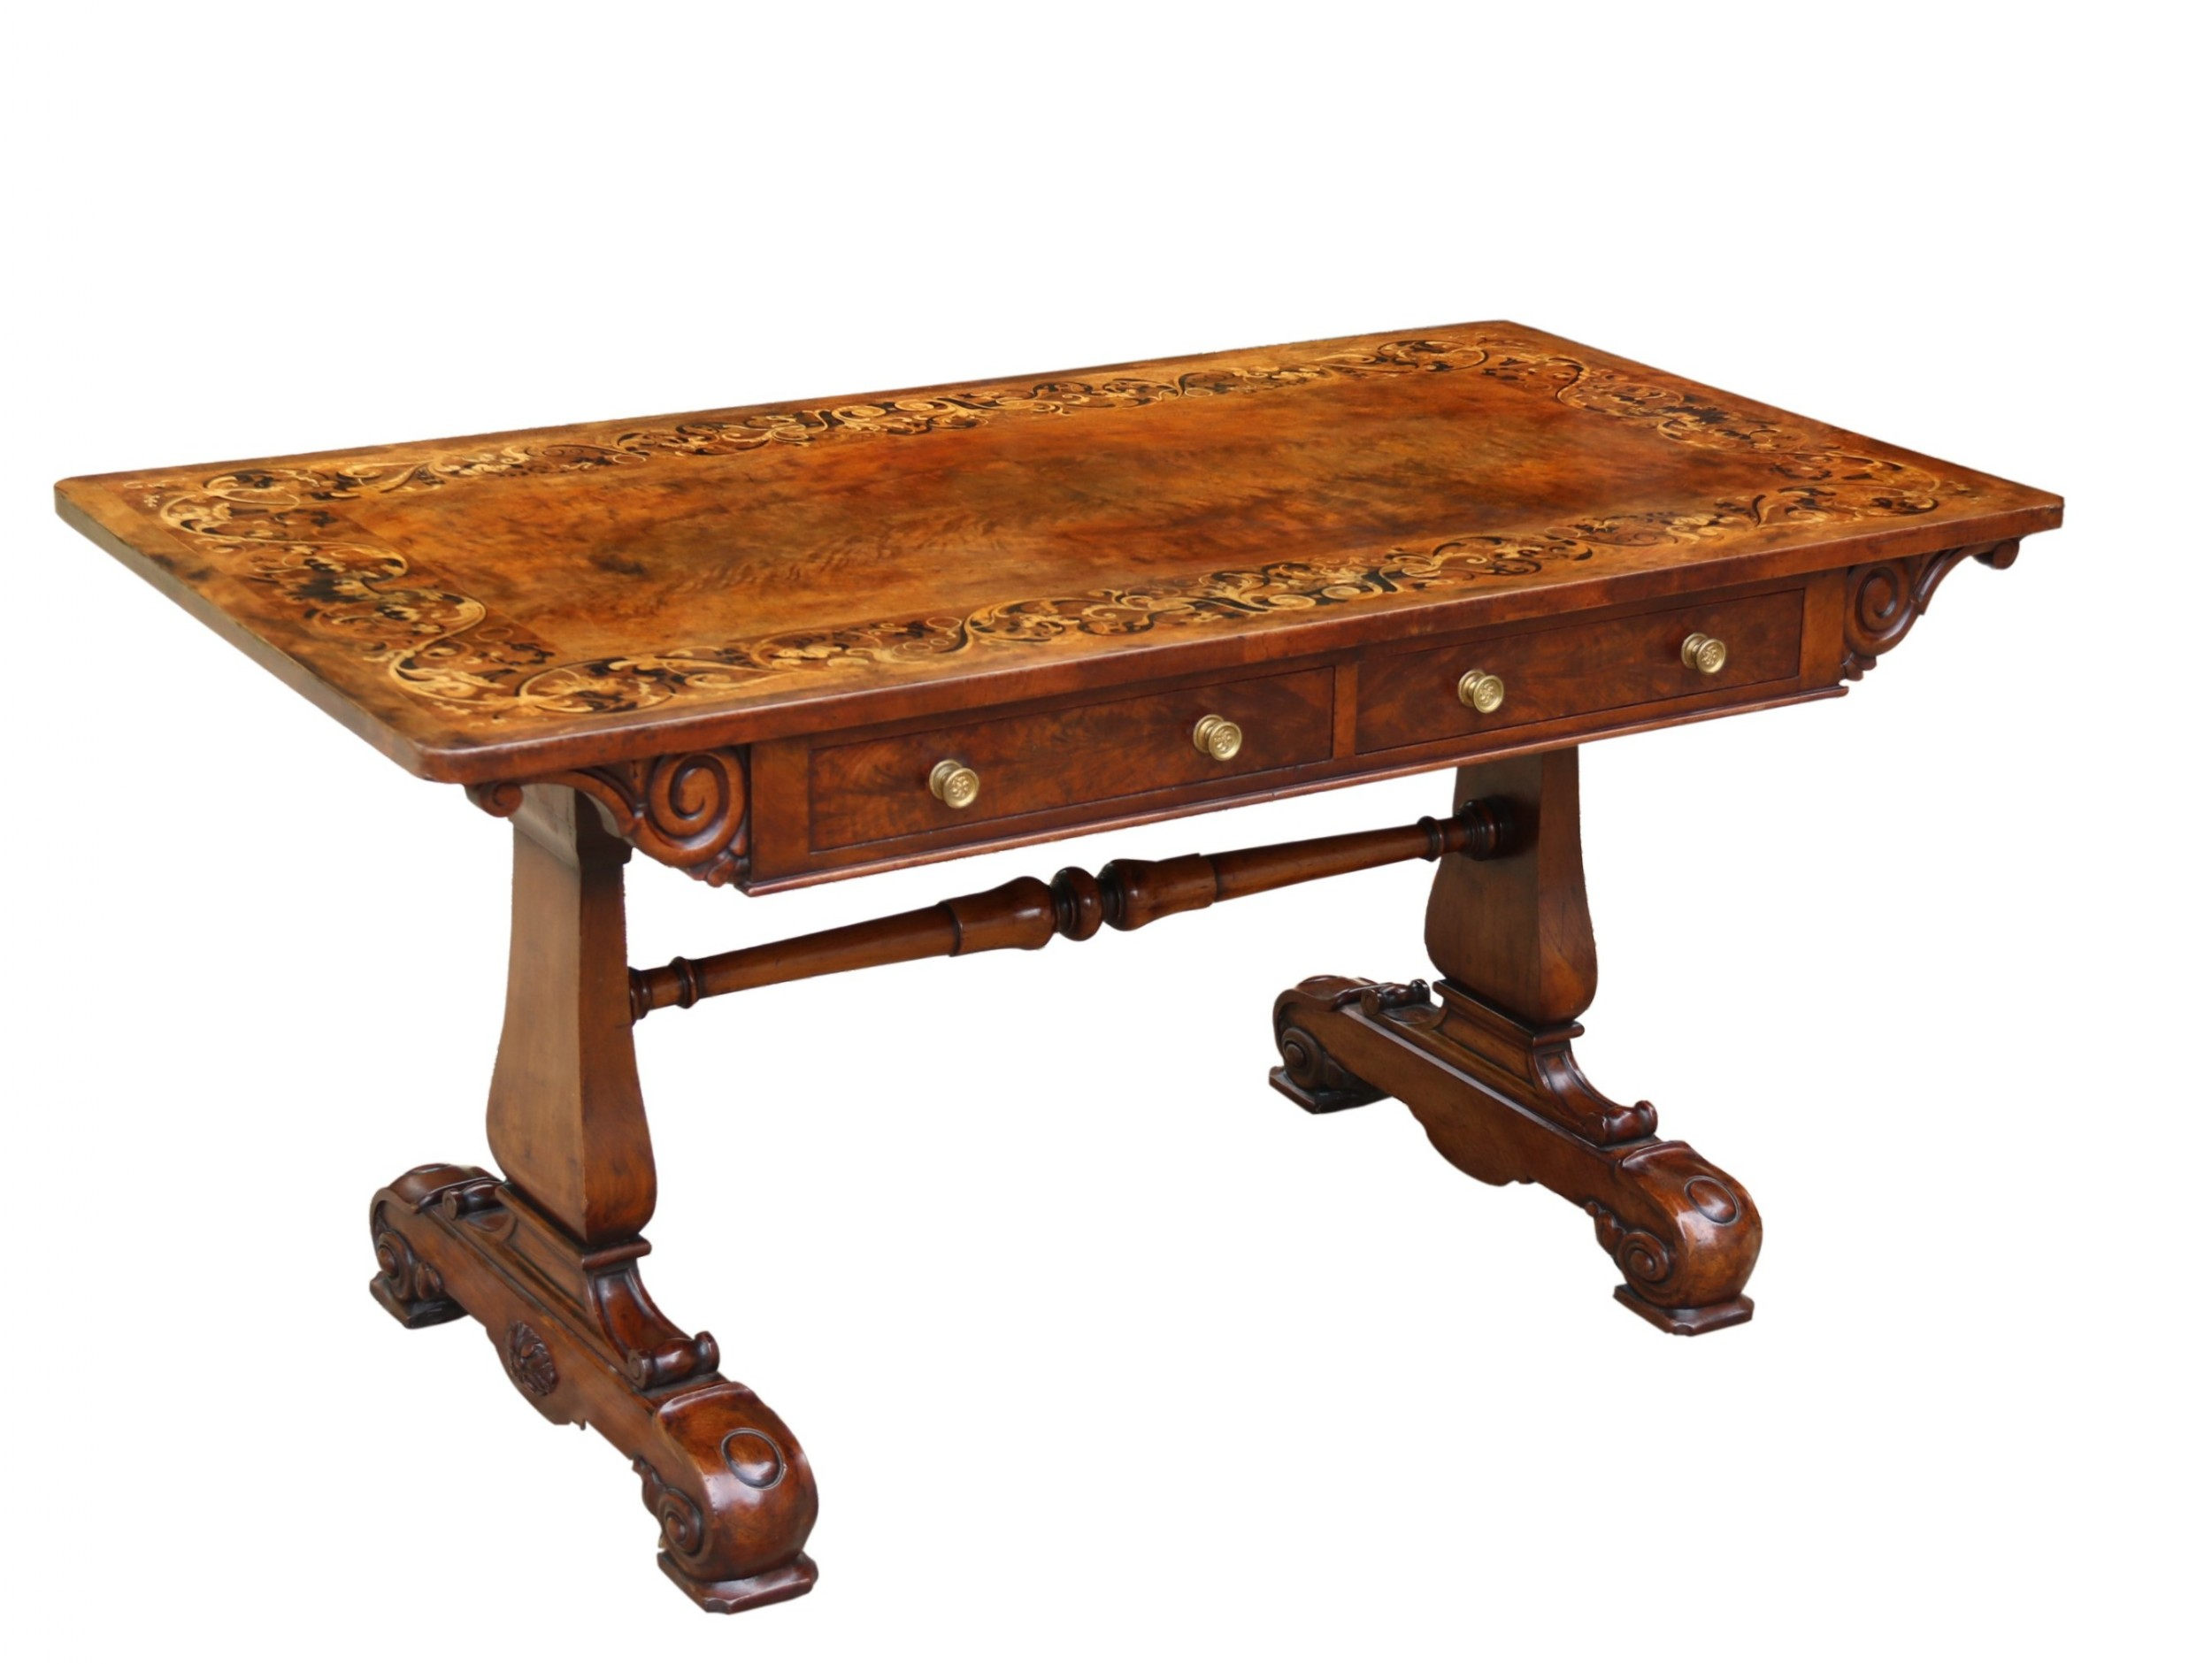 a superb flame mahogany and marquetry early 19th c library table